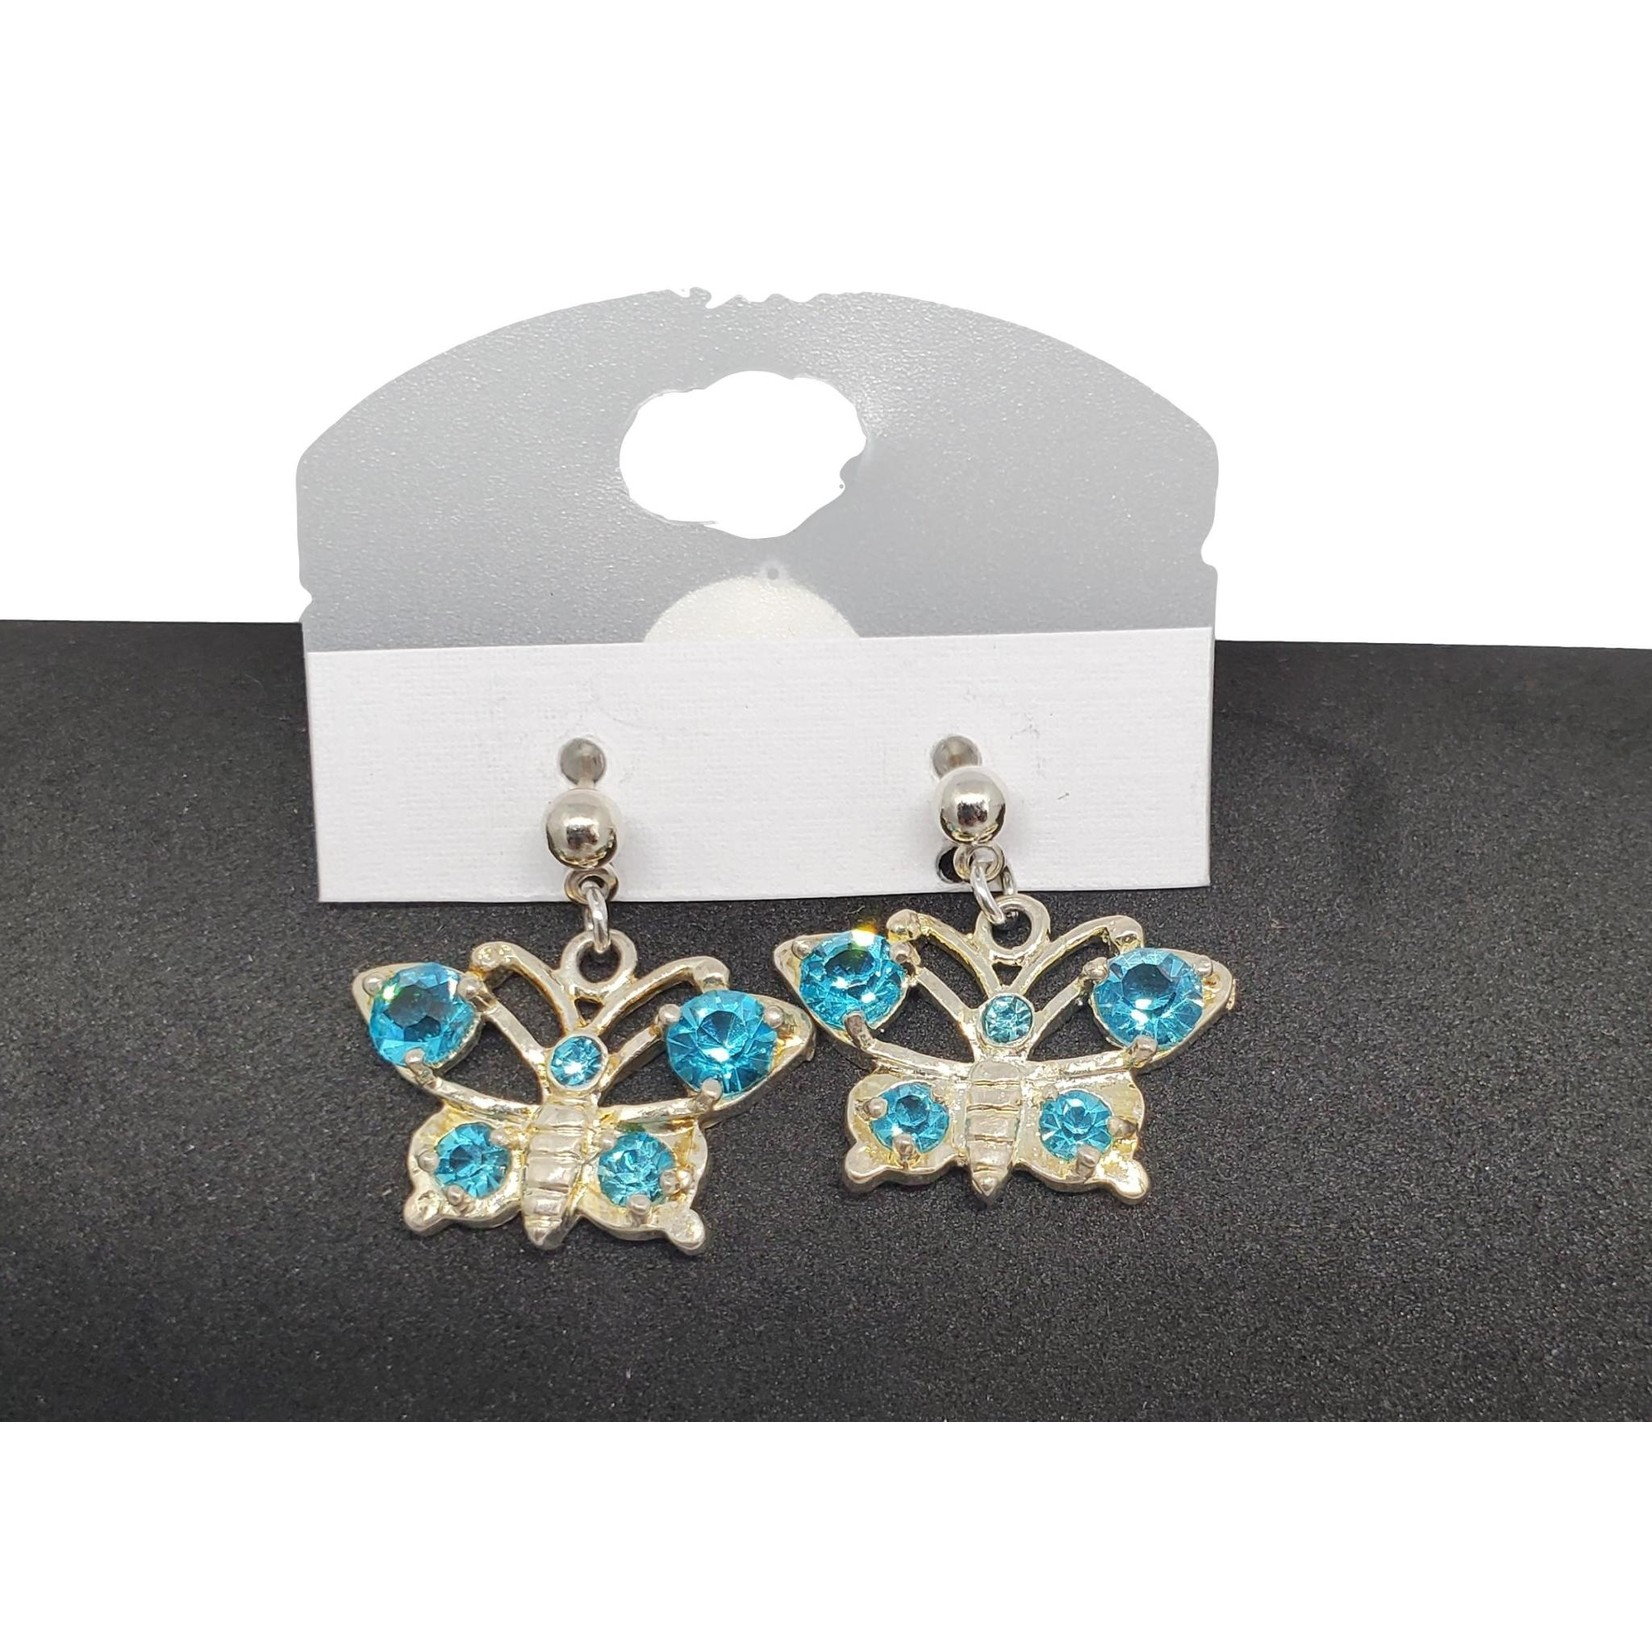 Jewellery by Deborah Young-Groves Silver Butterfly with Turquoise Stone Earrings